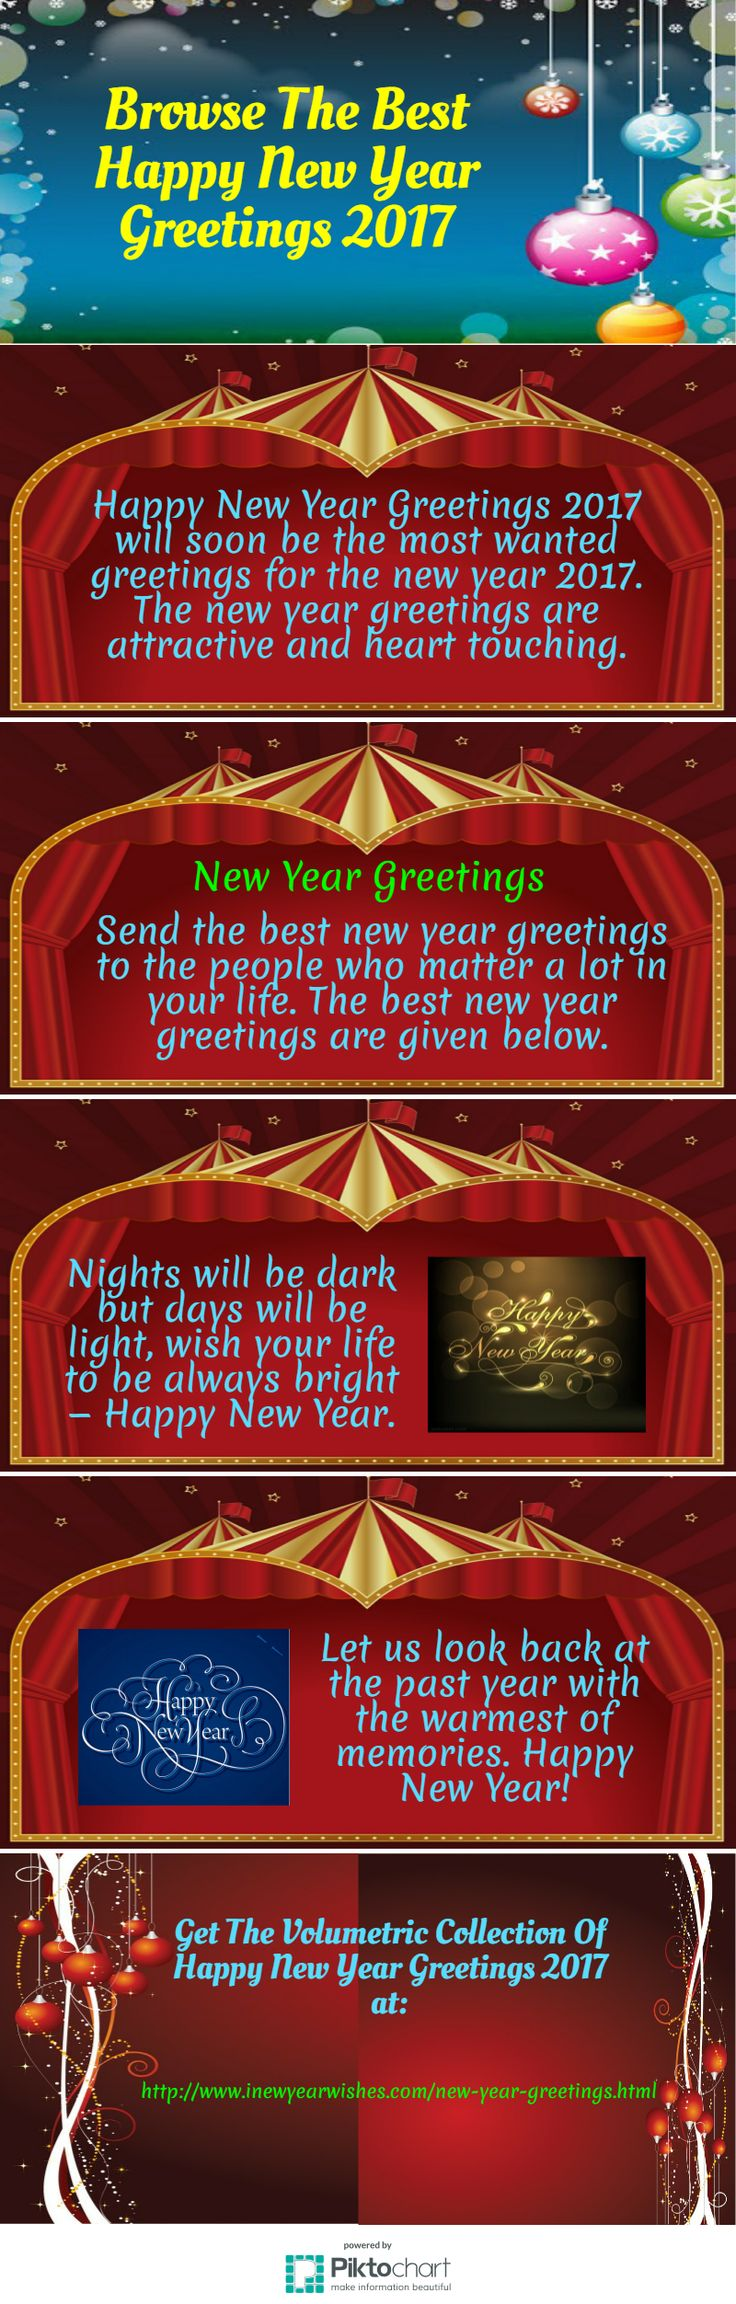 New Year Best Greetings Message Images Greetings Card Design Simple